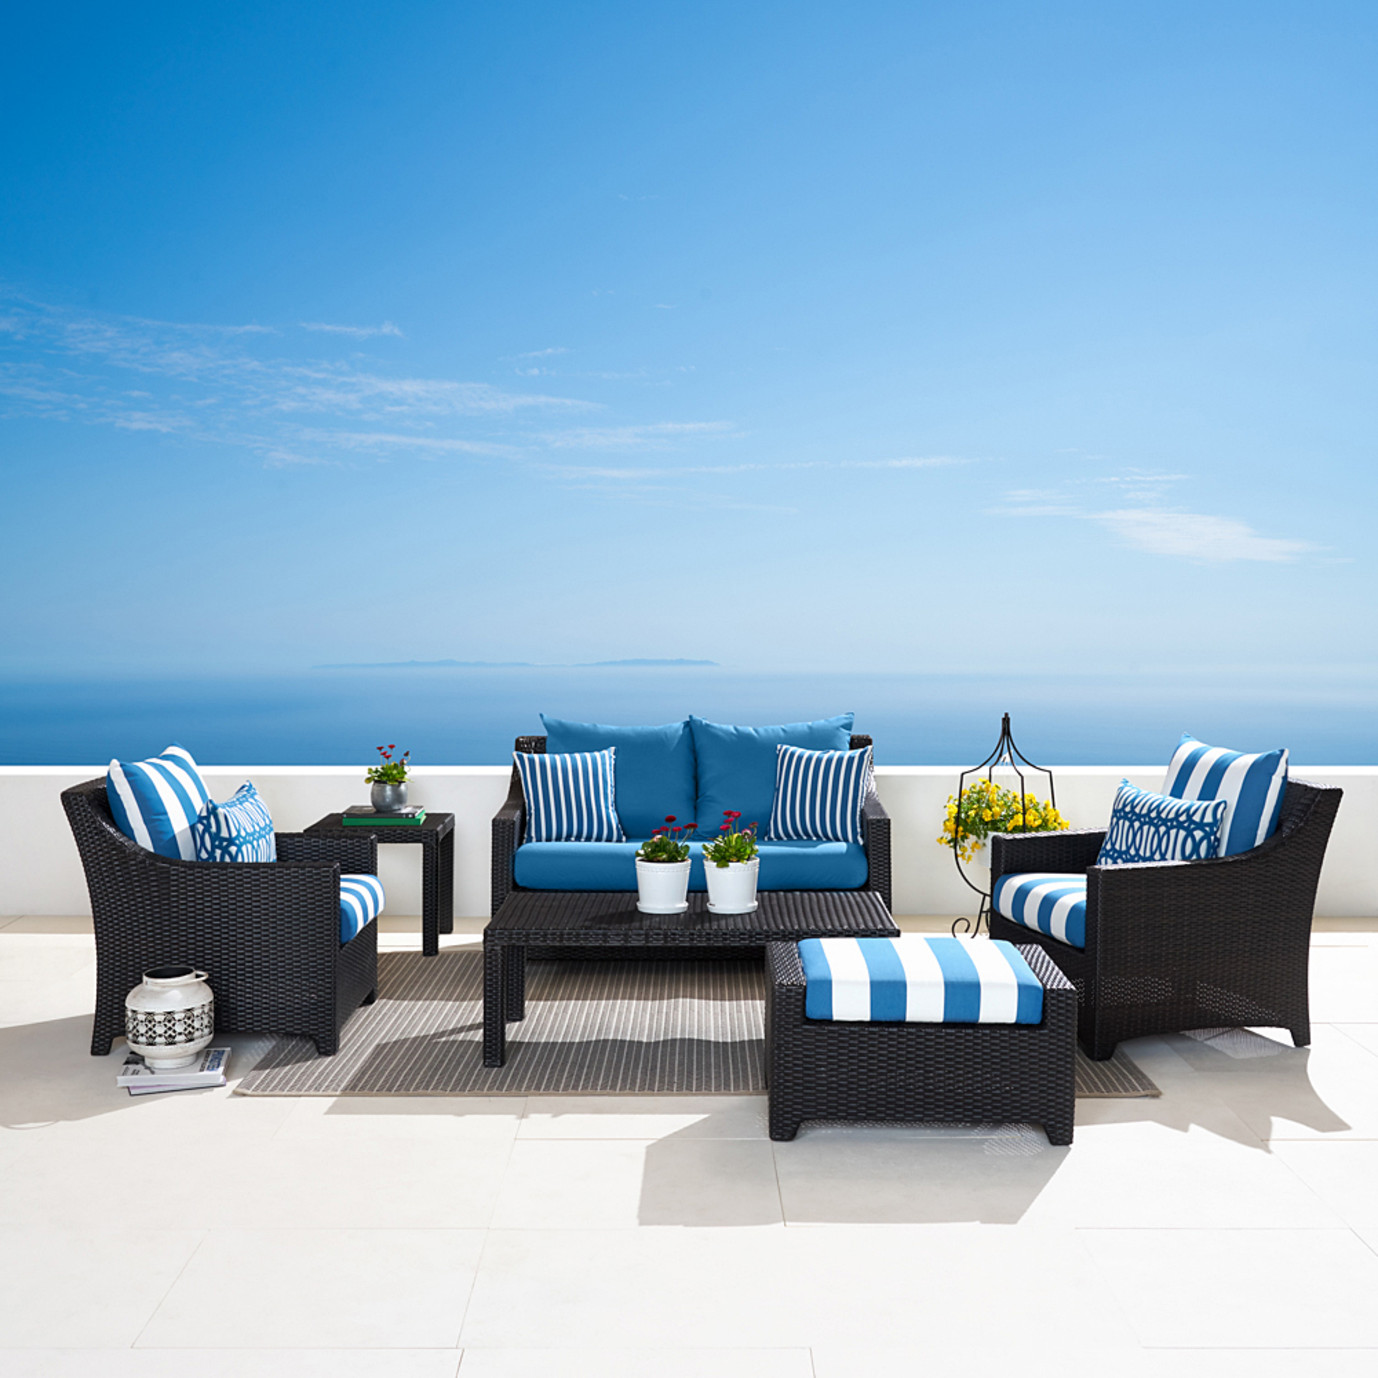 Deco™ 6pc Love and Club Seating Set - Regatta Blue